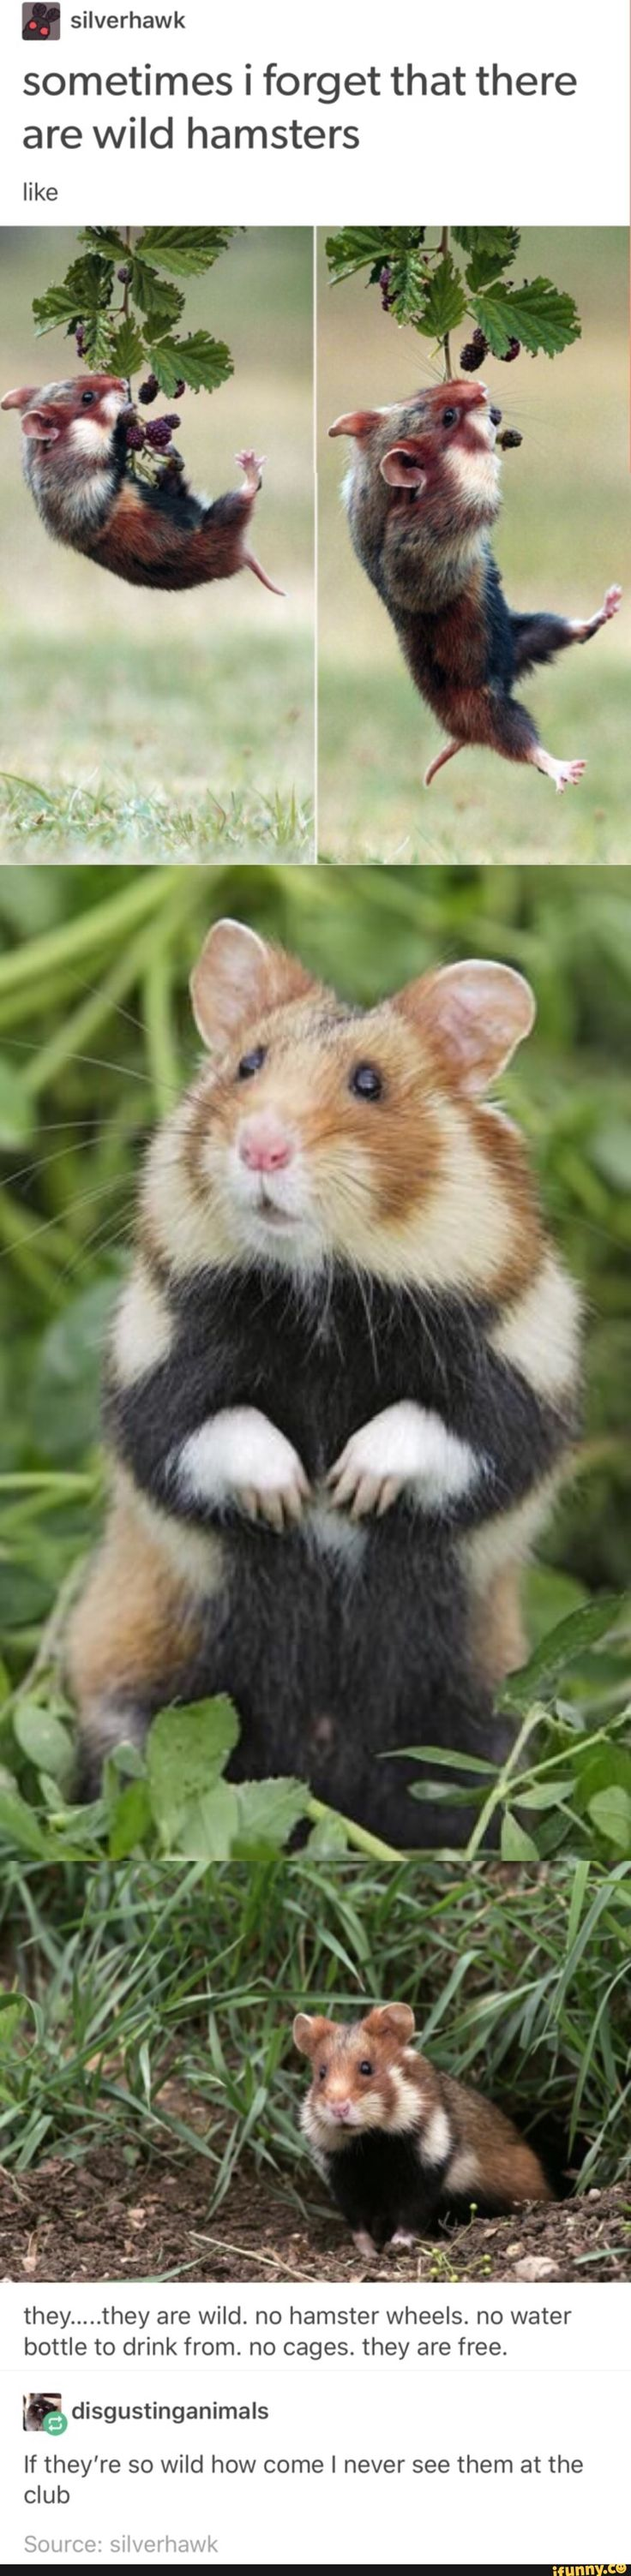 WILD HAMSTERS EVERYONE LOOK AT THIS IT'S NOT A SOCIAL ISSUE BUT LOOK